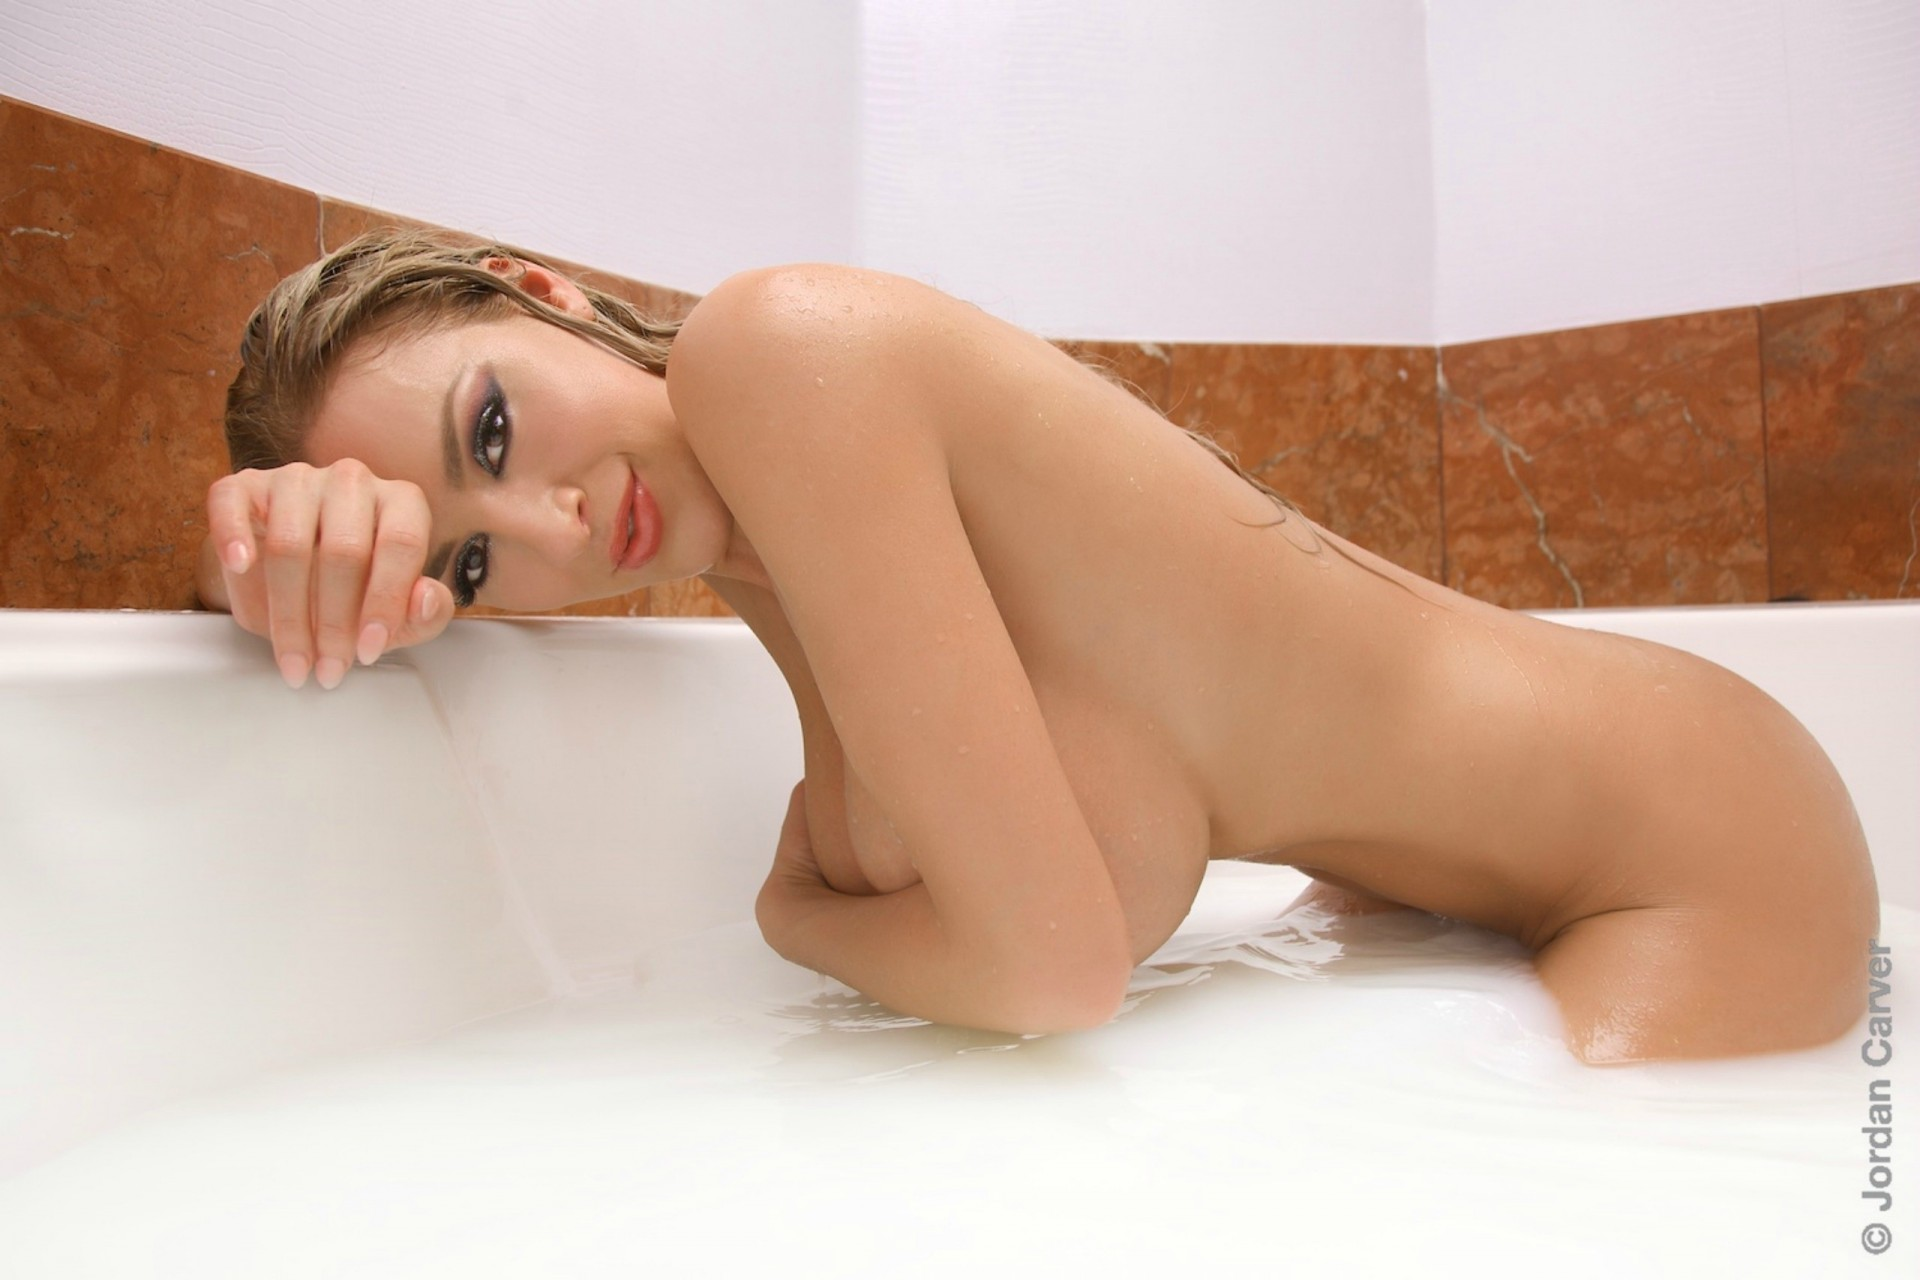 that-girl-nude-milk-bath-vanessa